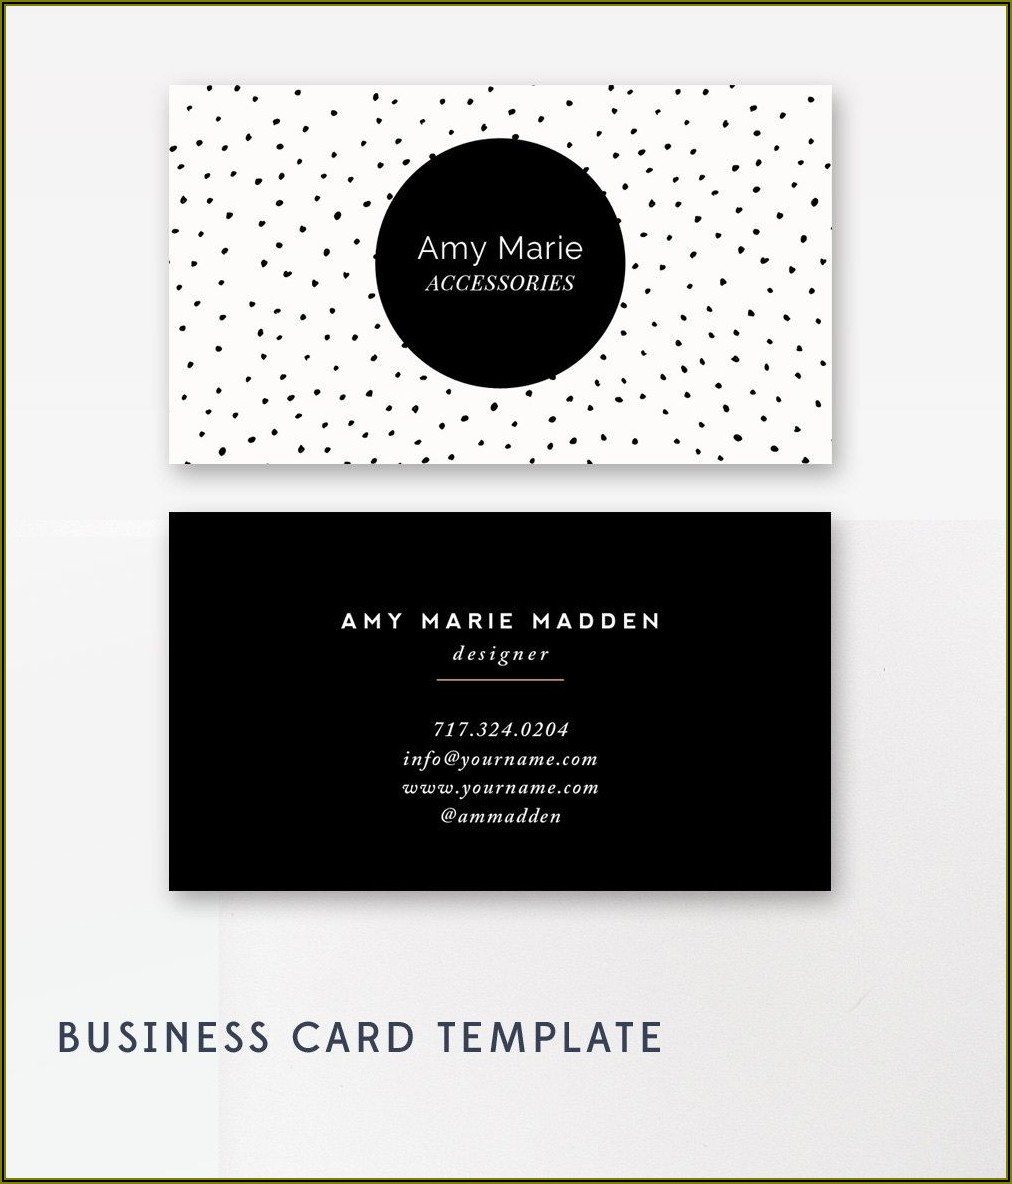 Moo Business Card Template Photoshop